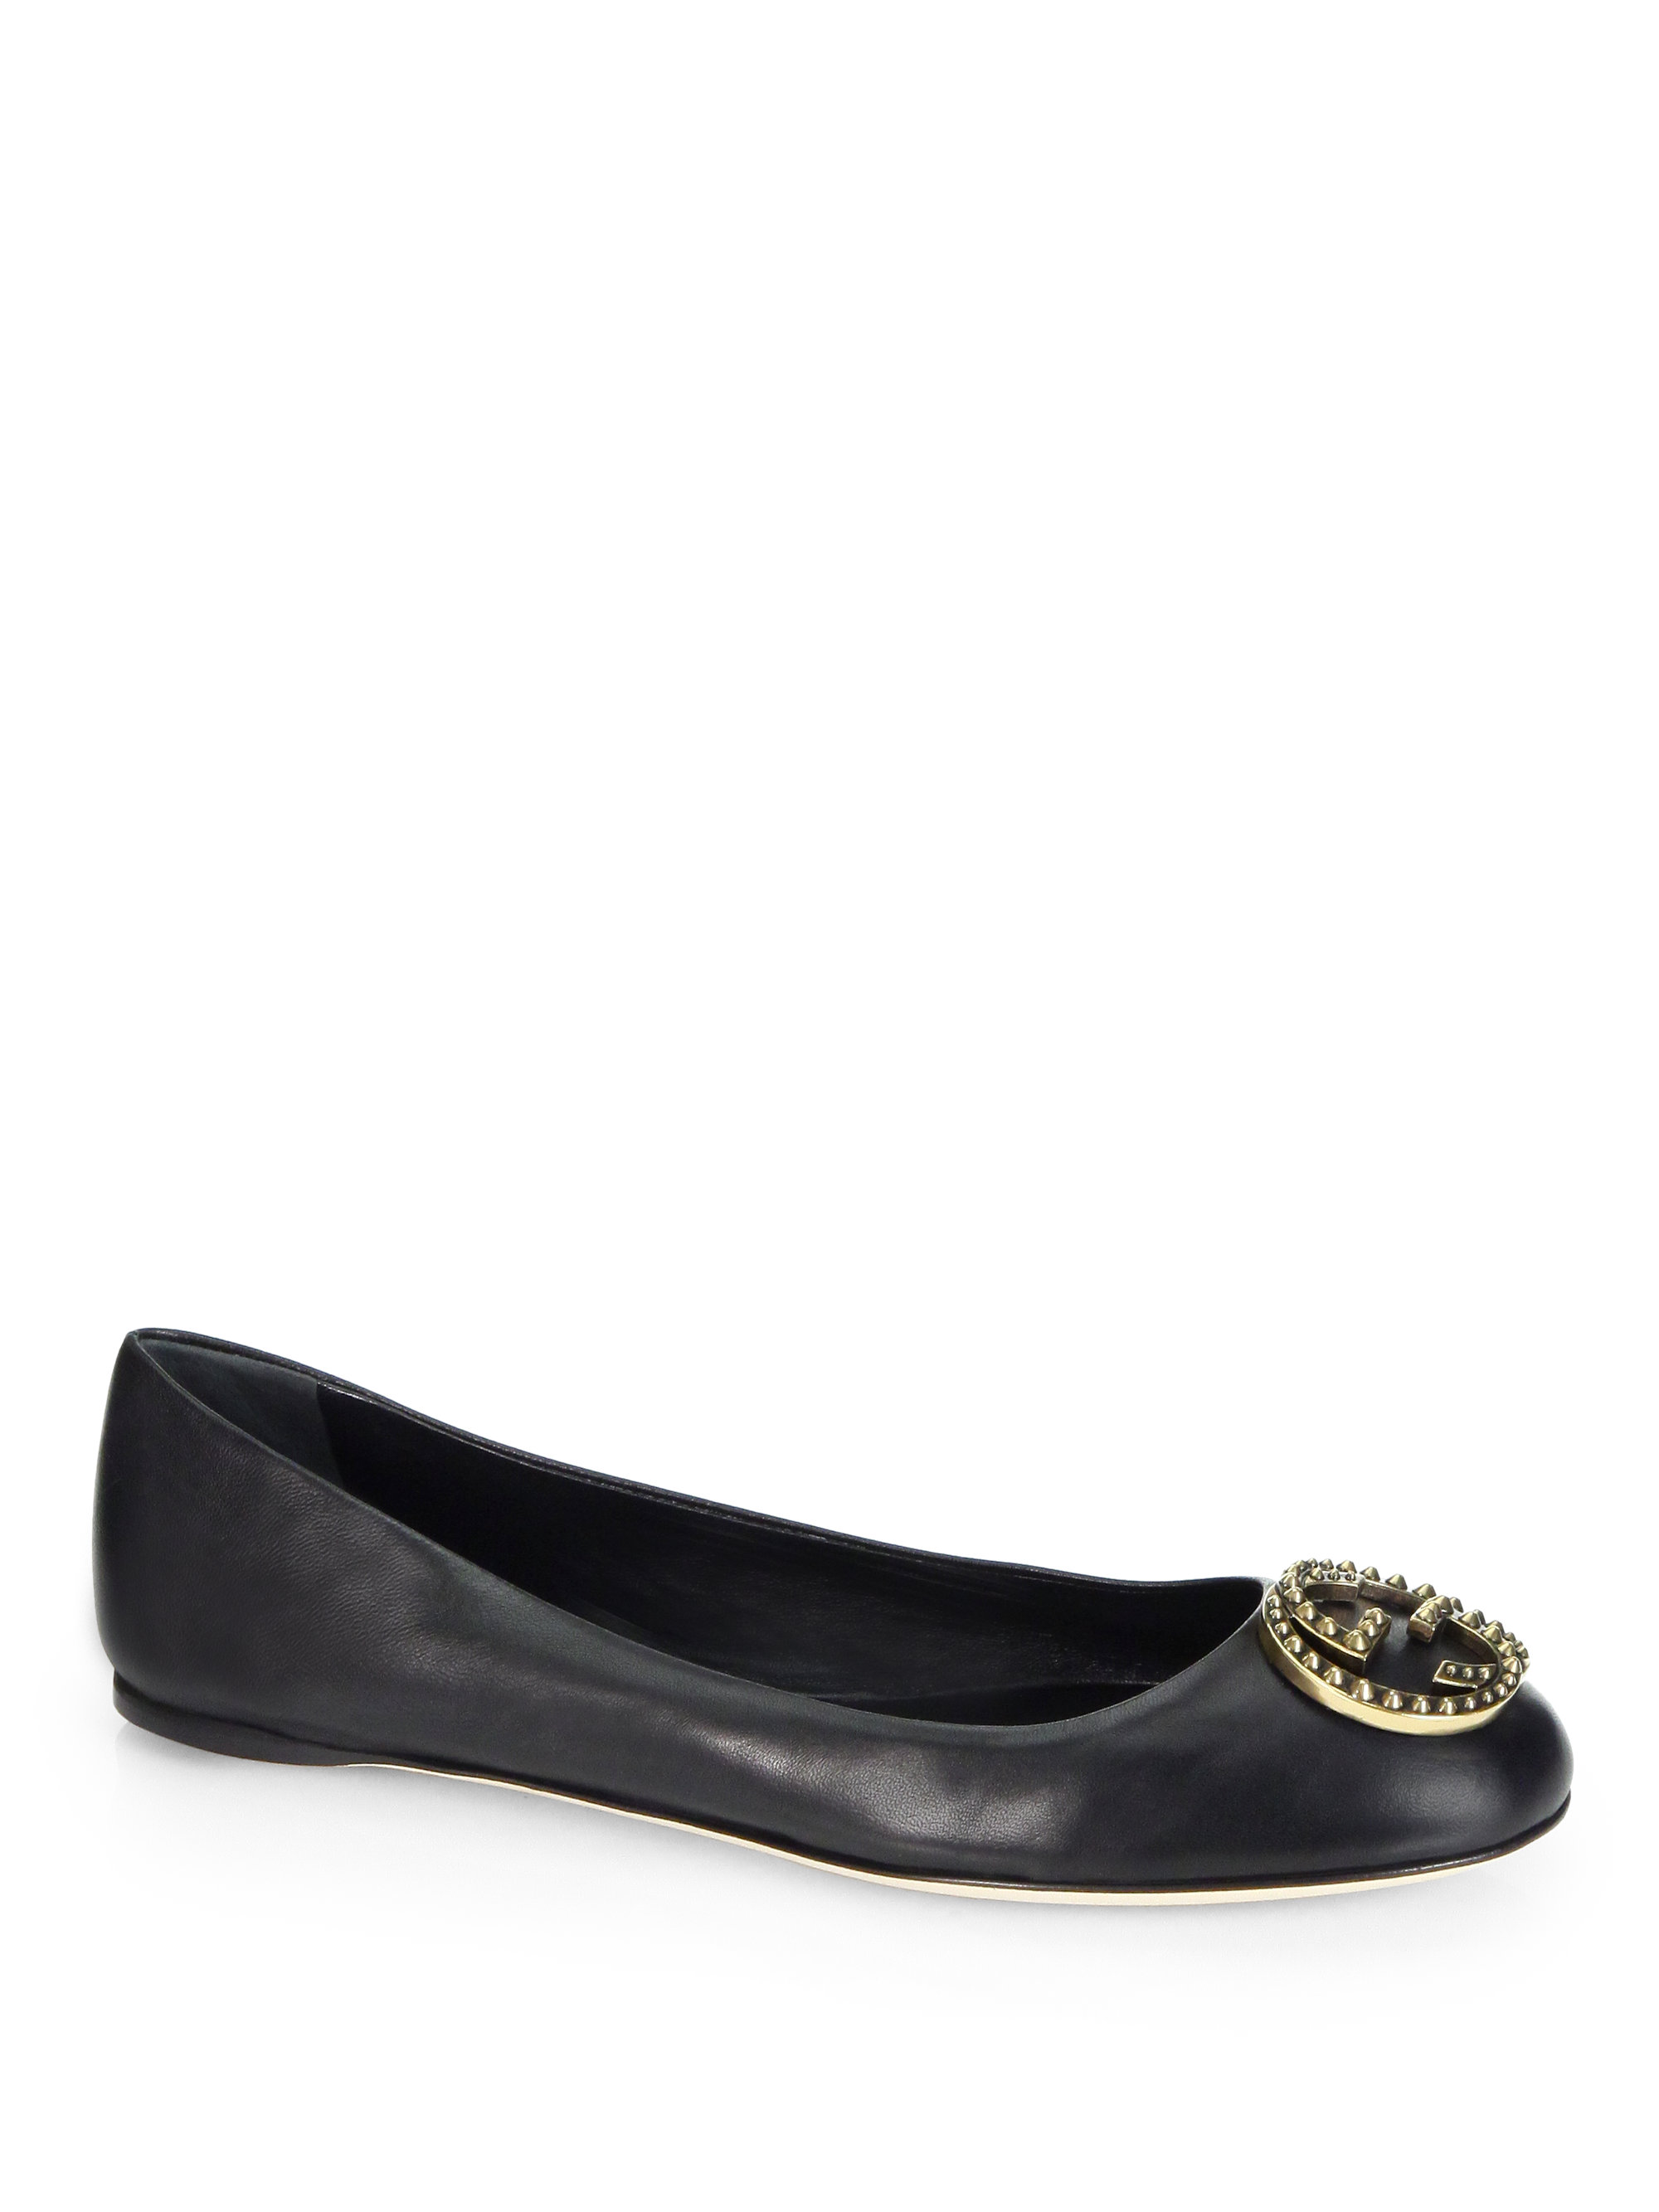 Gucci Leather Logo Ballet Flats in